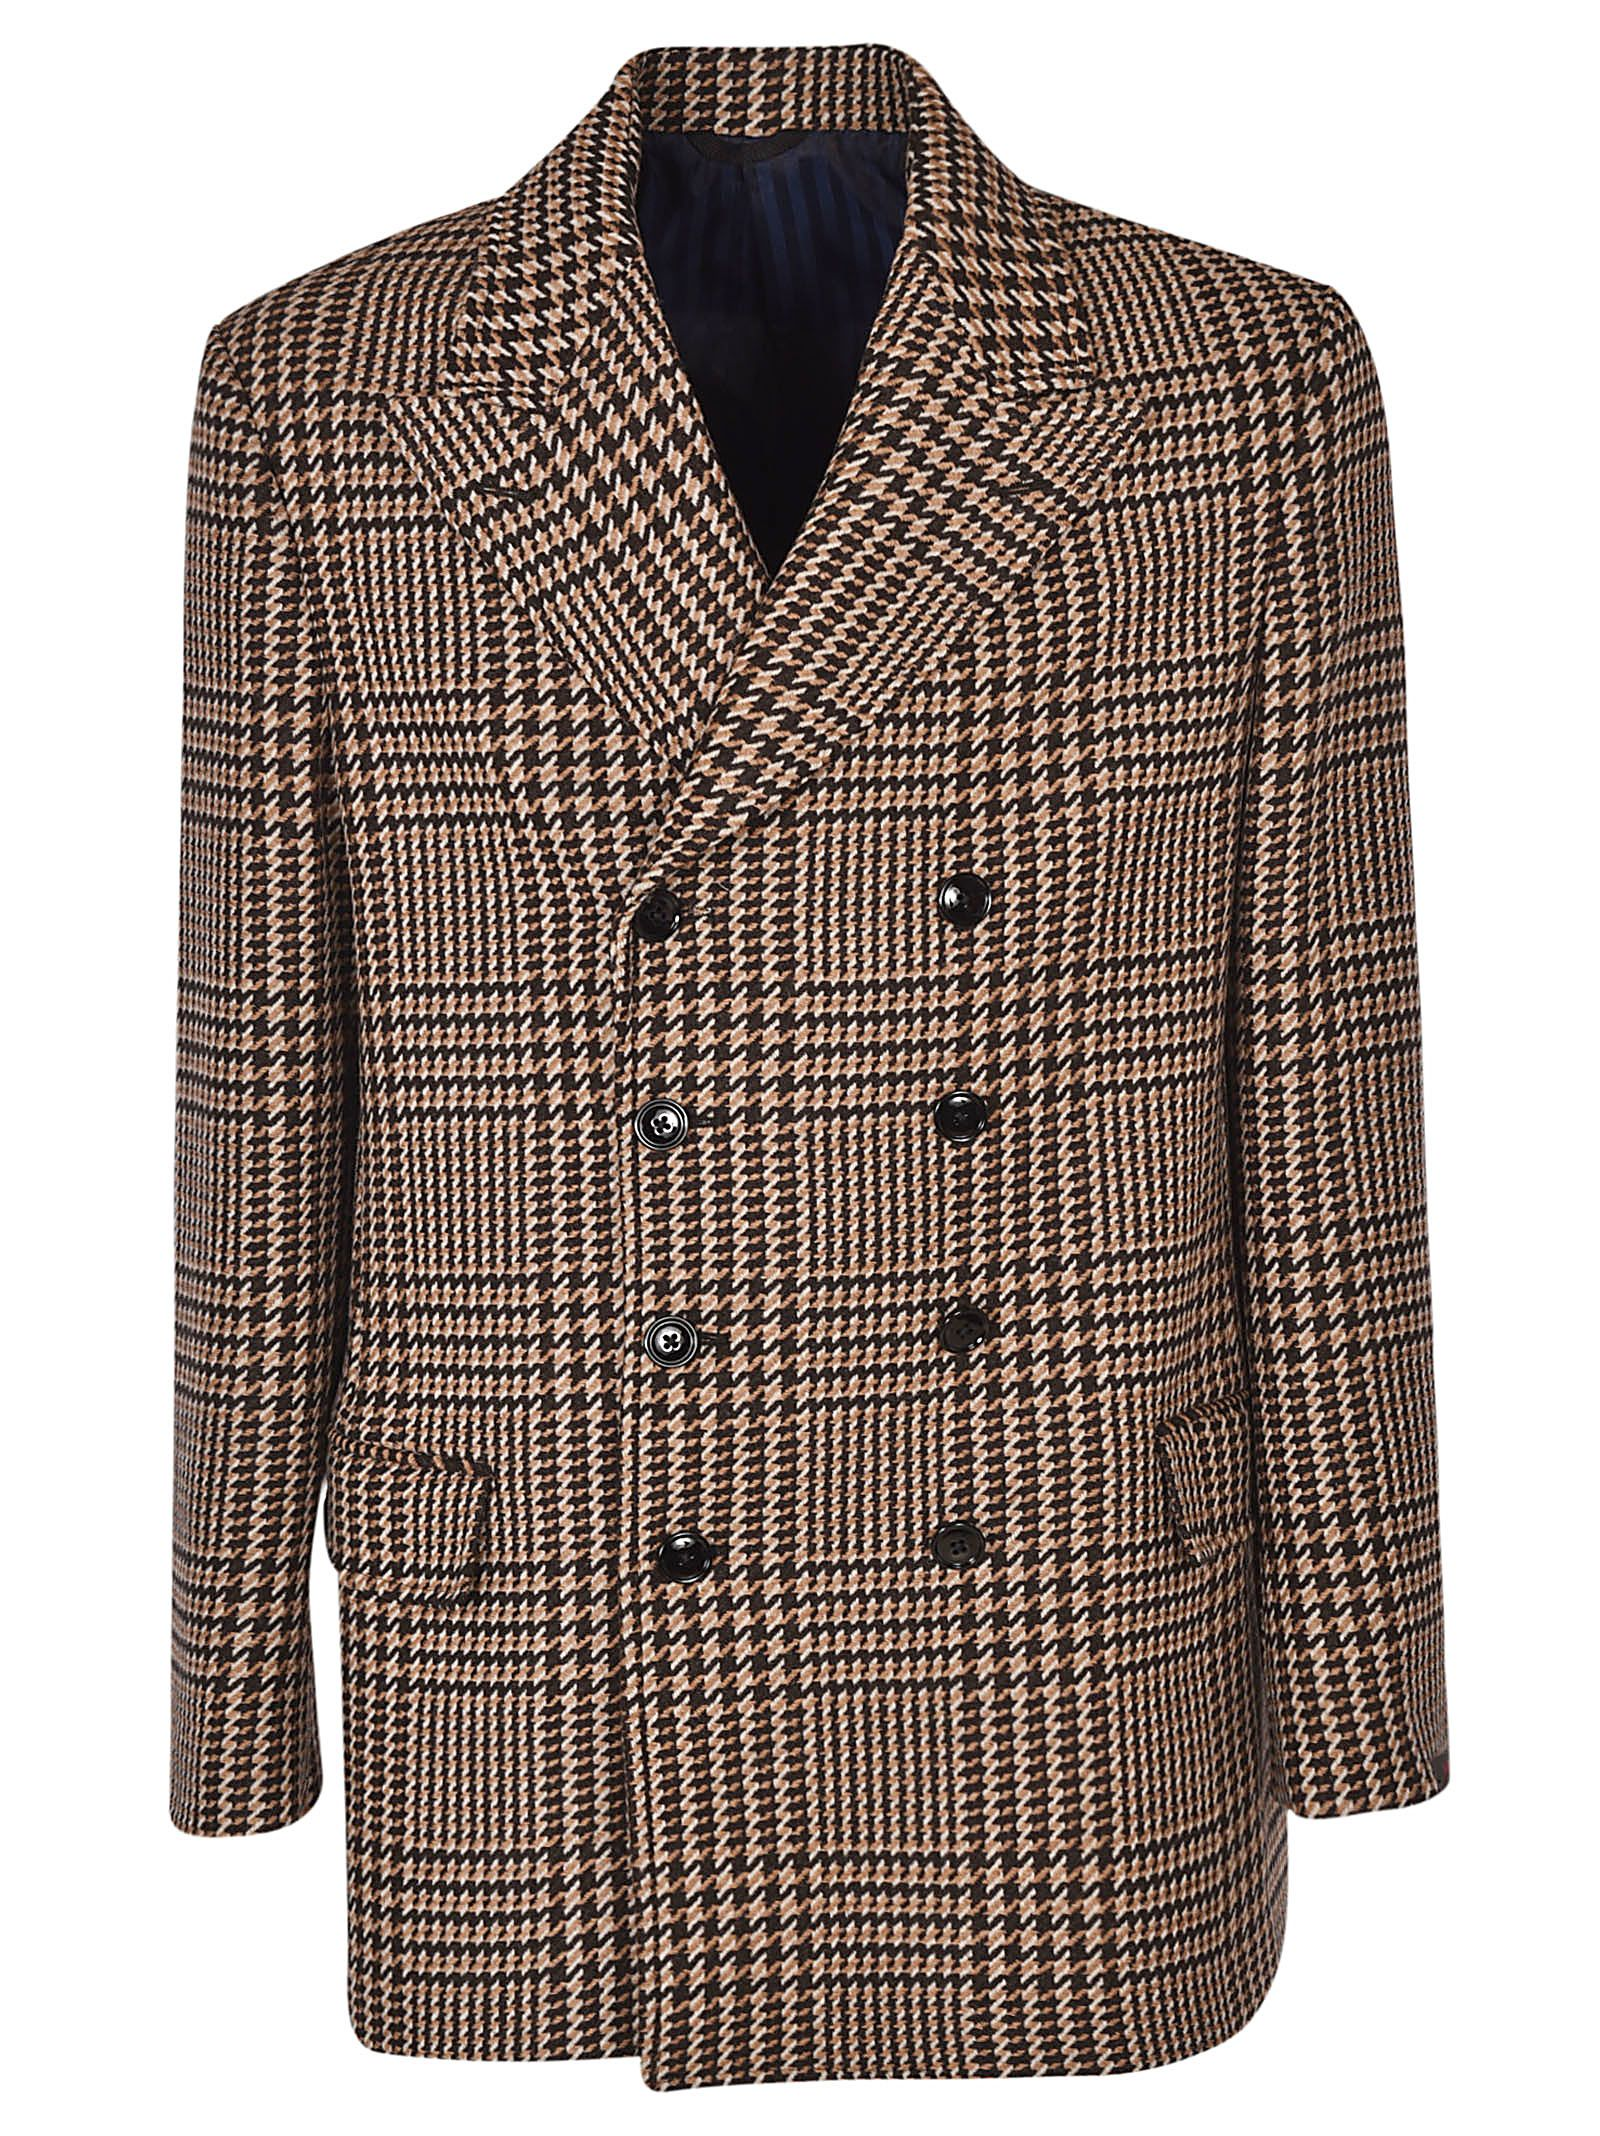 MASSIMO PIOMBO Double Breasted Coat in 12Q